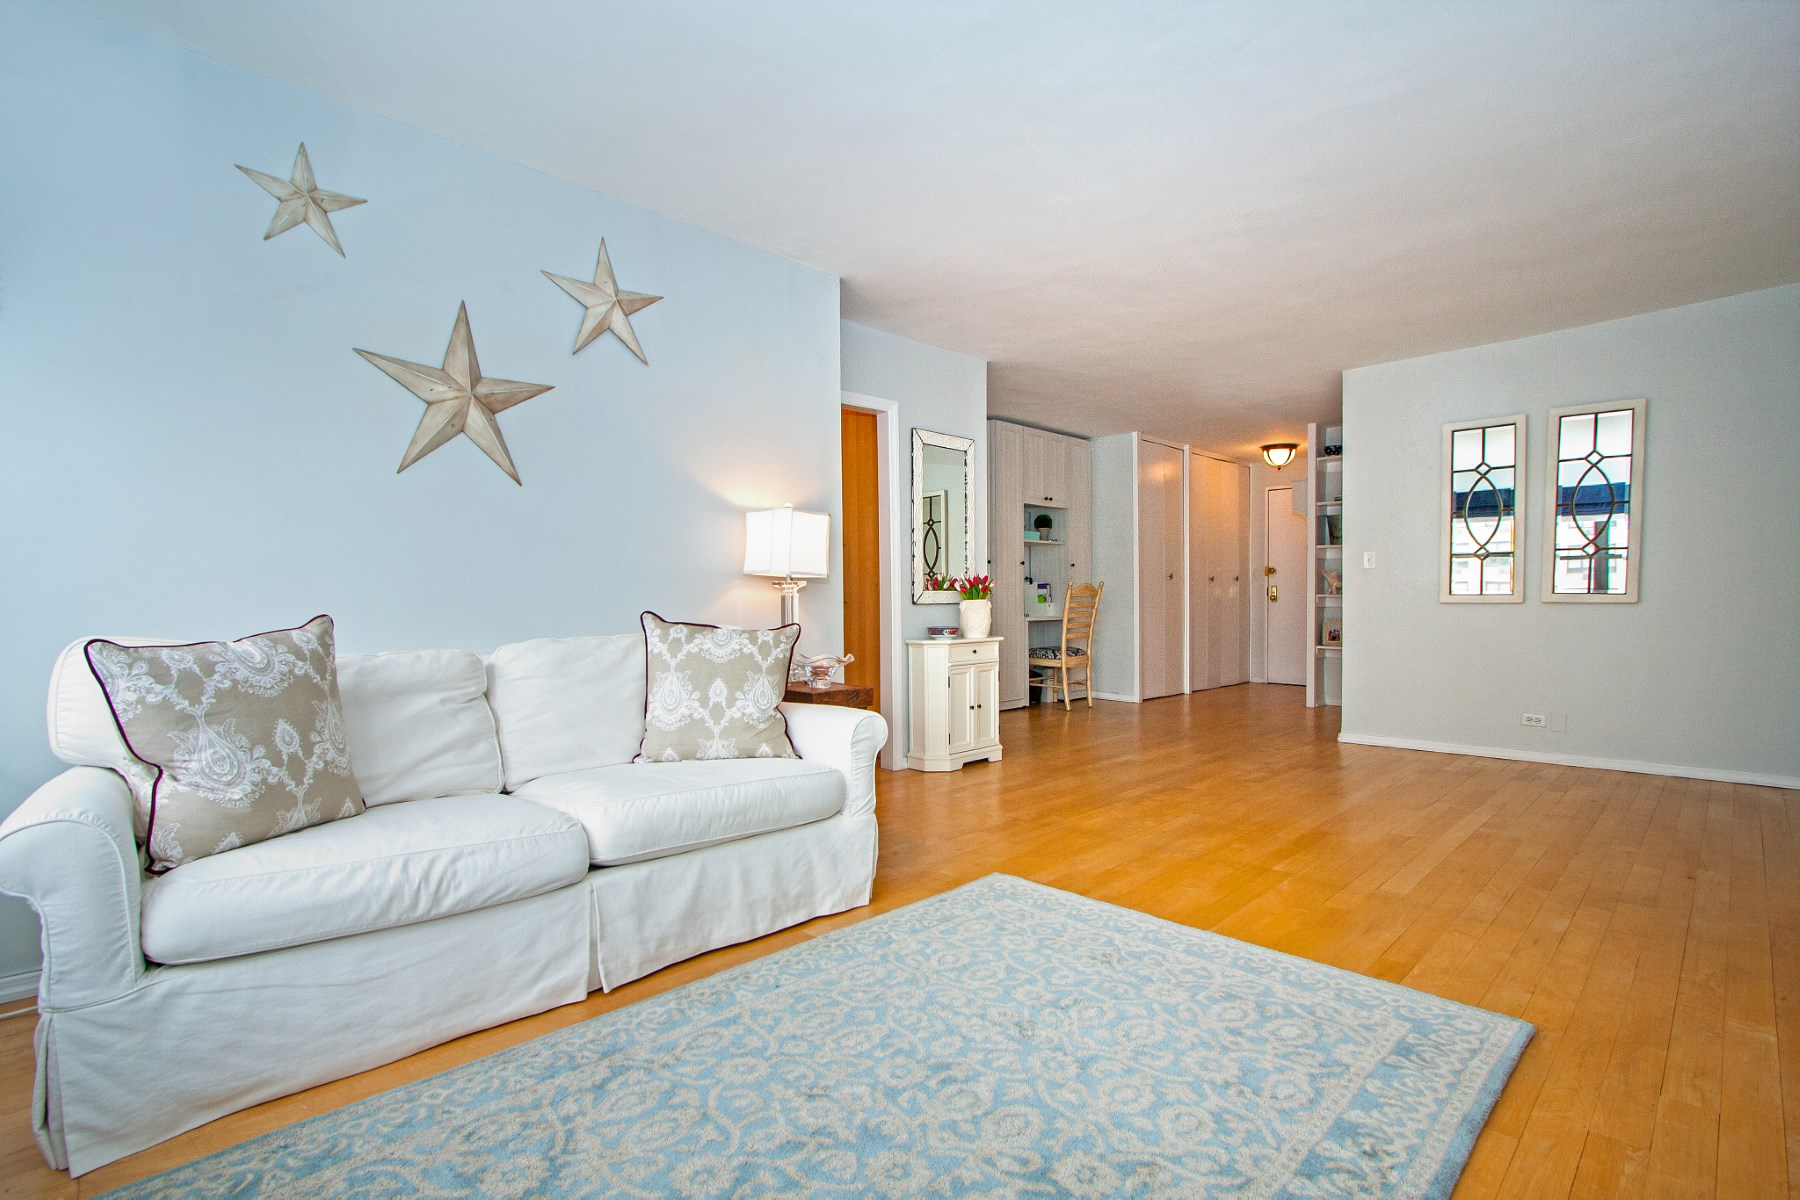 Co-op for Sale at 245 East 25th Street, Apt 19L 245 East 25th Street Apt 19l New York, New York 10010 United States